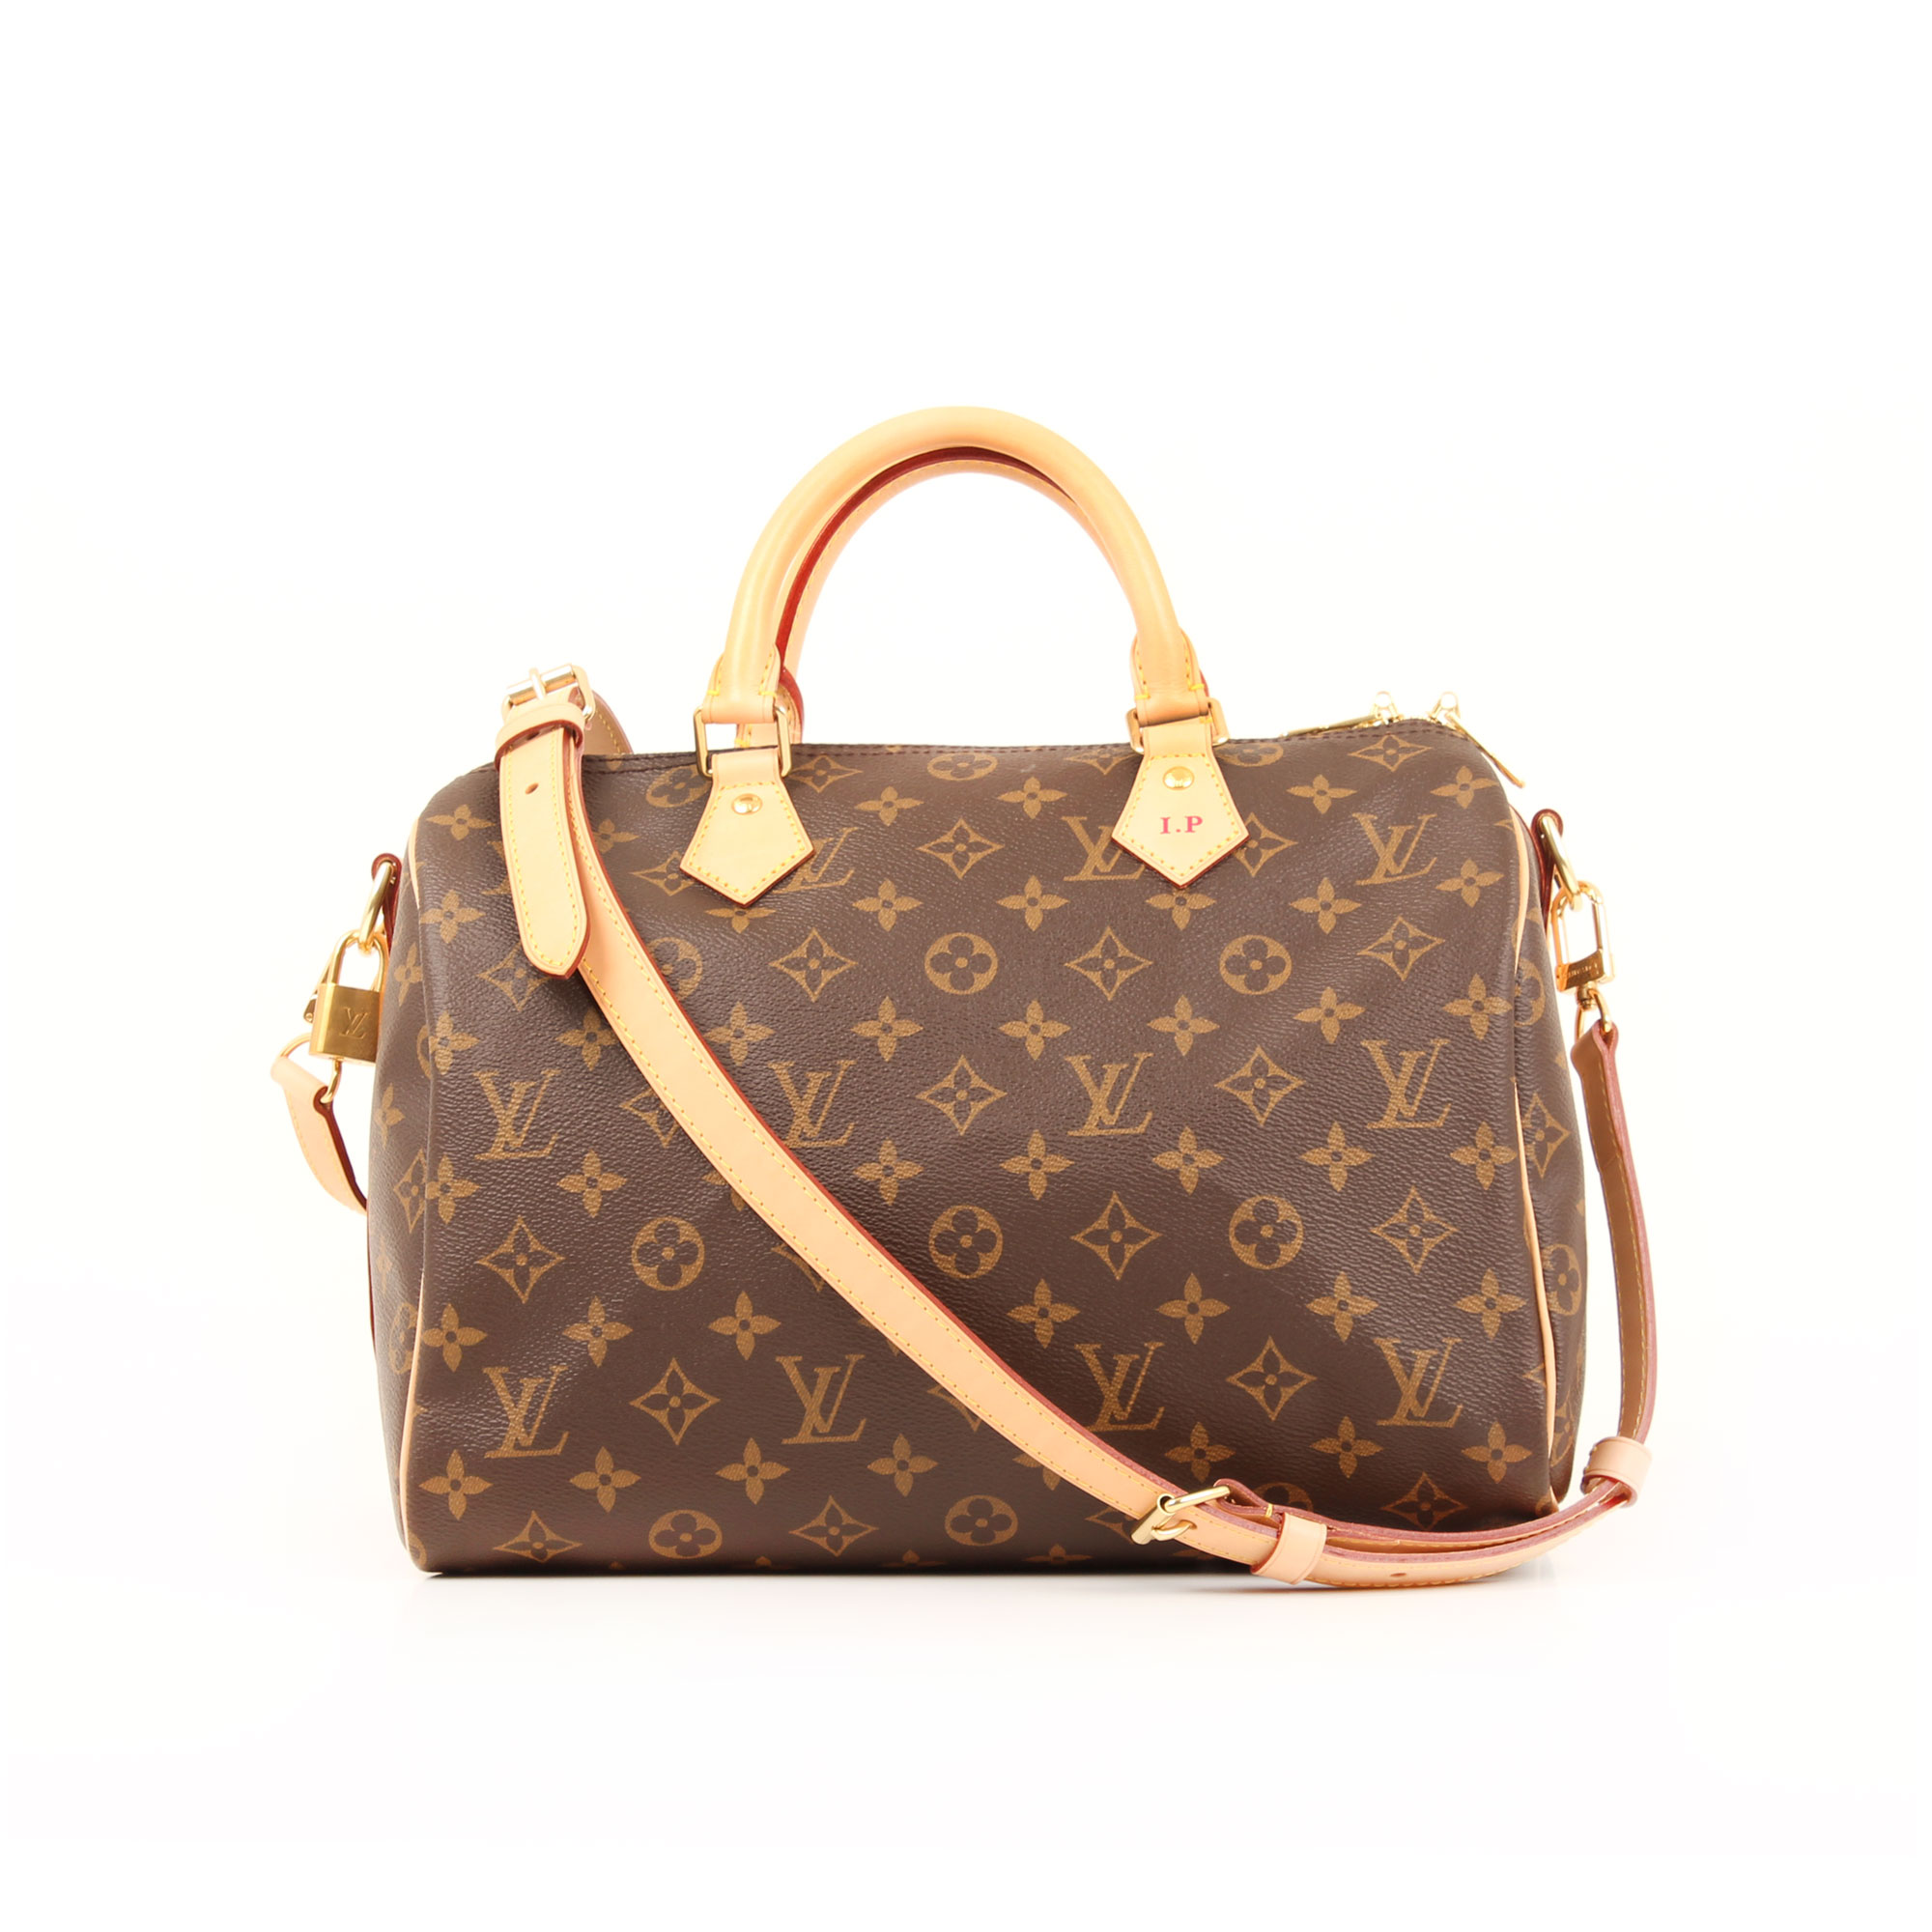 Front image of louis vuitton speedy 30 monogram bandouliere